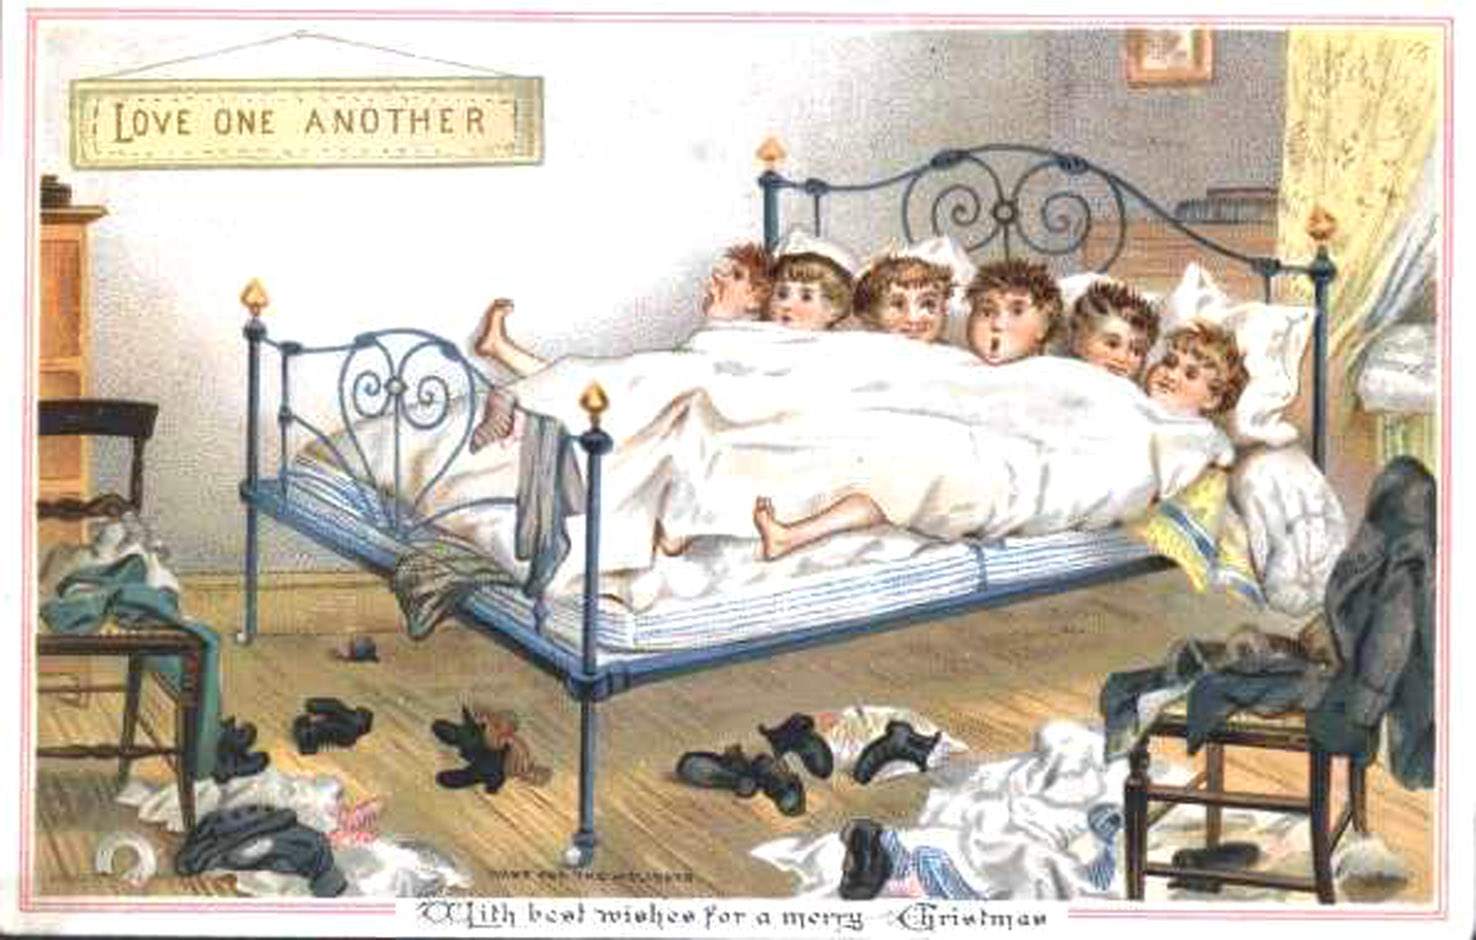 Boys in bedroom 1881 - No 01 in series of four amusing vintage Christmas cards